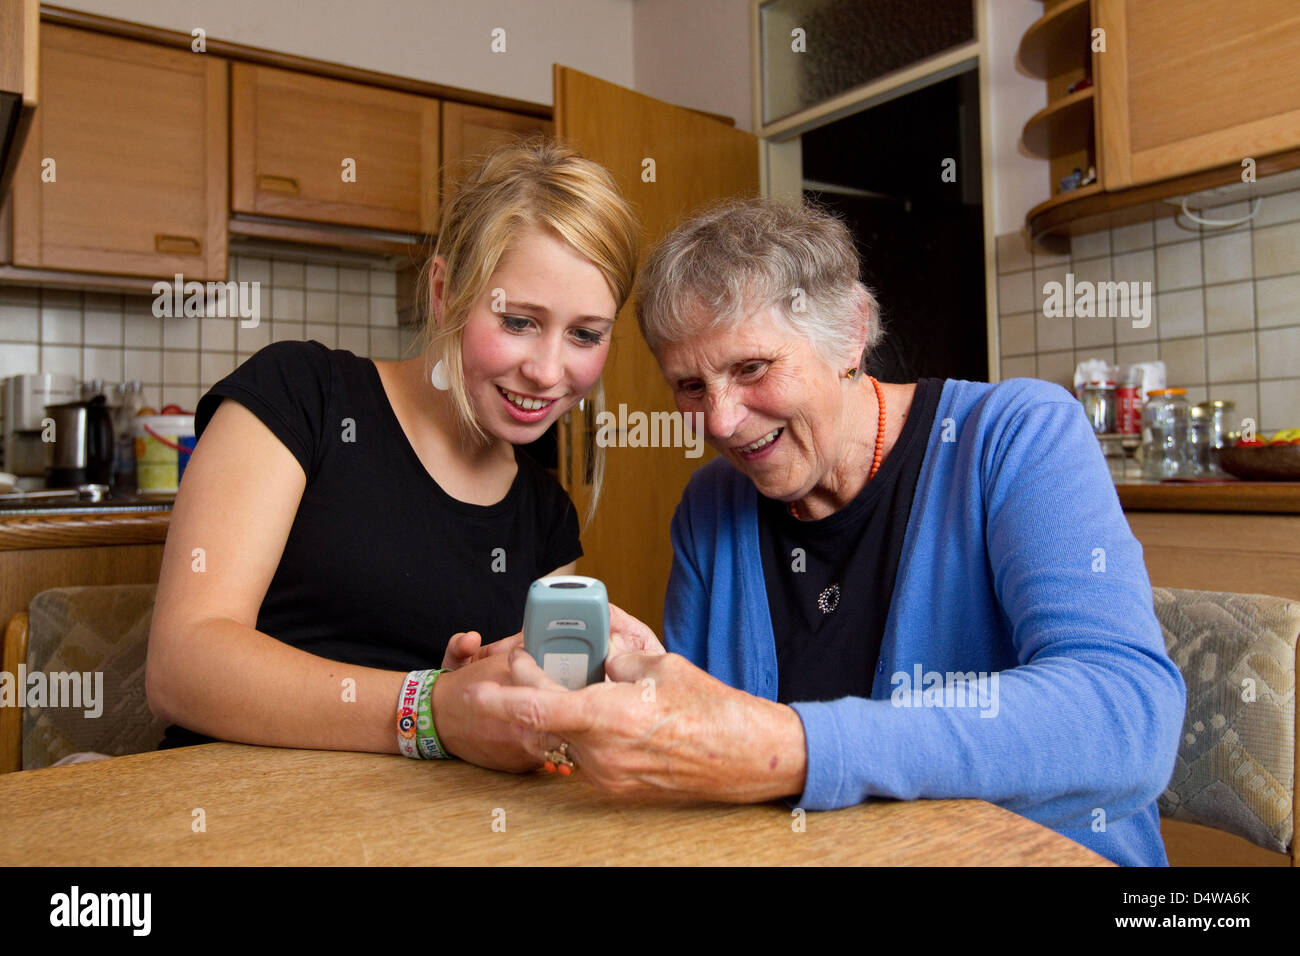 Senior Klara Fuerst (78) and student Sarah Boehm (20) use a mobile phone in their kitchen in Muenster, Germany, Stock Photo